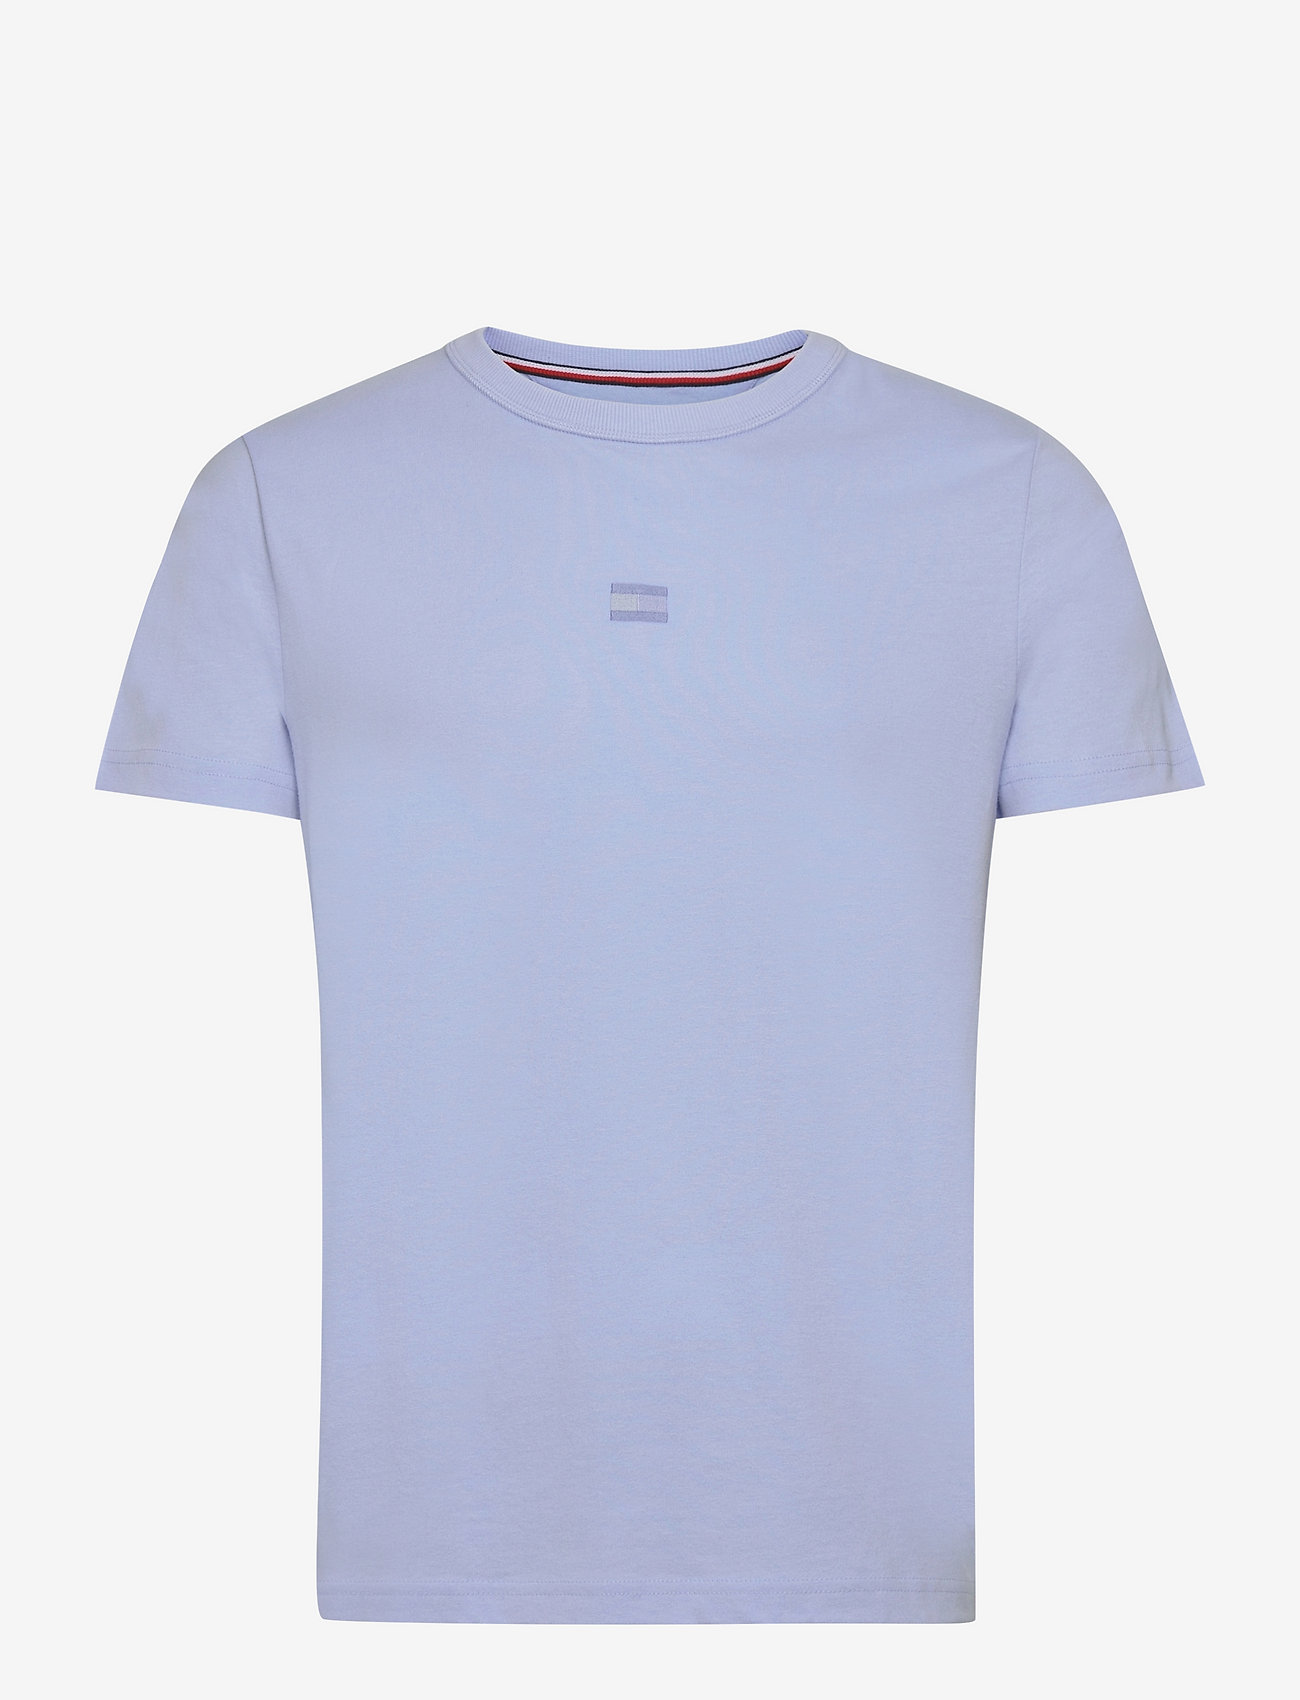 Tommy Hilfiger - RECYCLED COTTON TEE - t-shirts basiques - sweet blue - 0